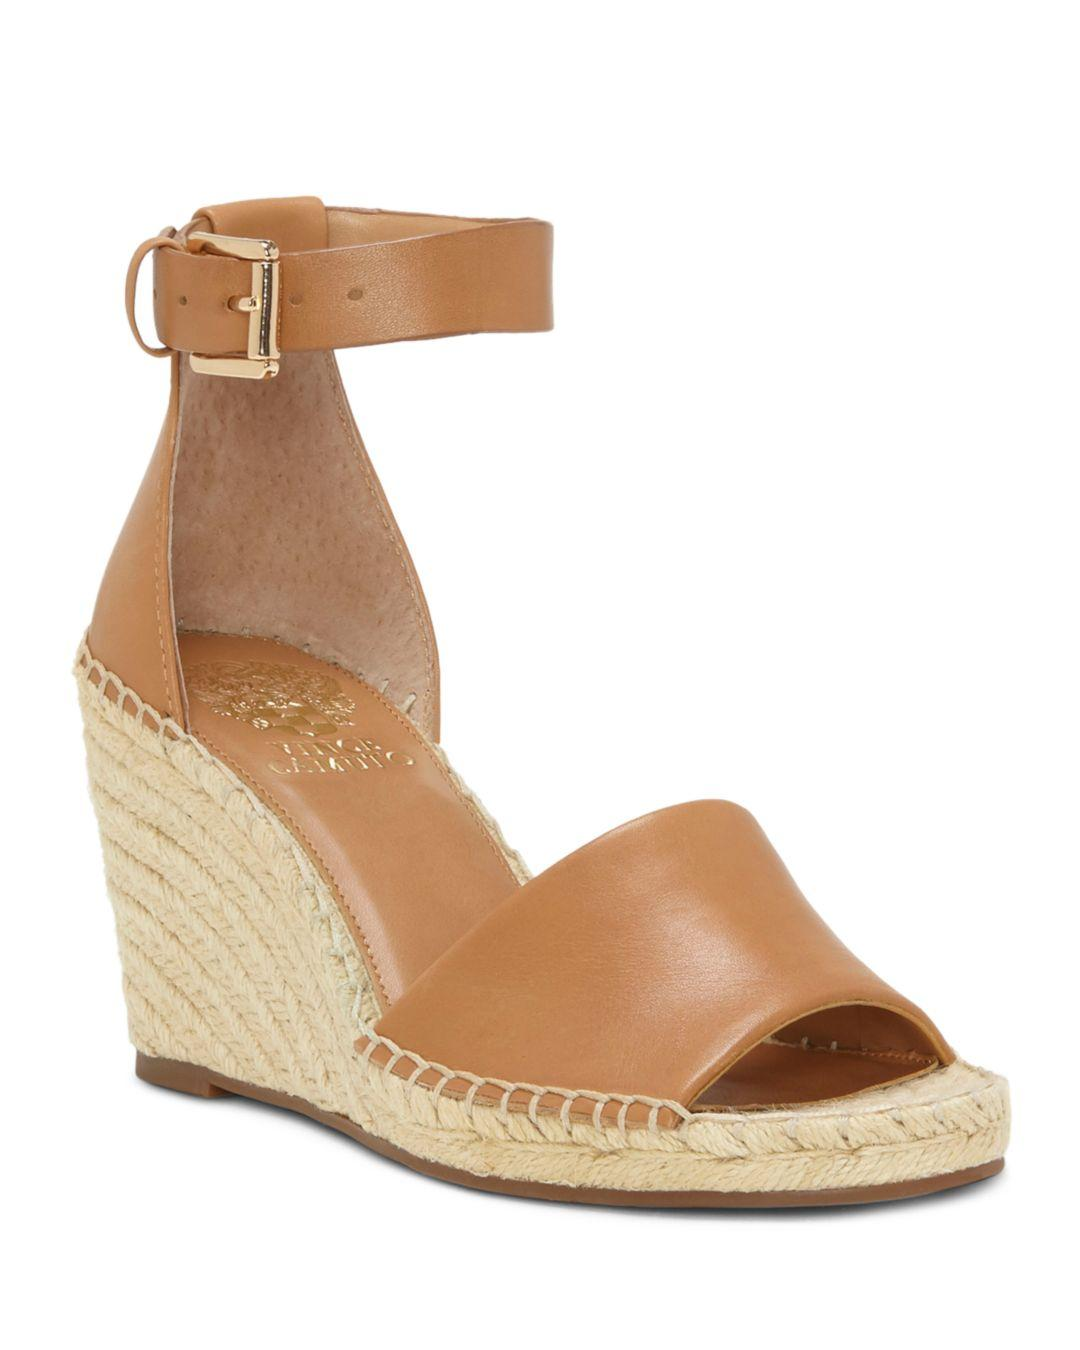 67f1ac875c2 Vince Camuto Leera Espadrille Wedge Sandals in Brown - Save 14% - Lyst